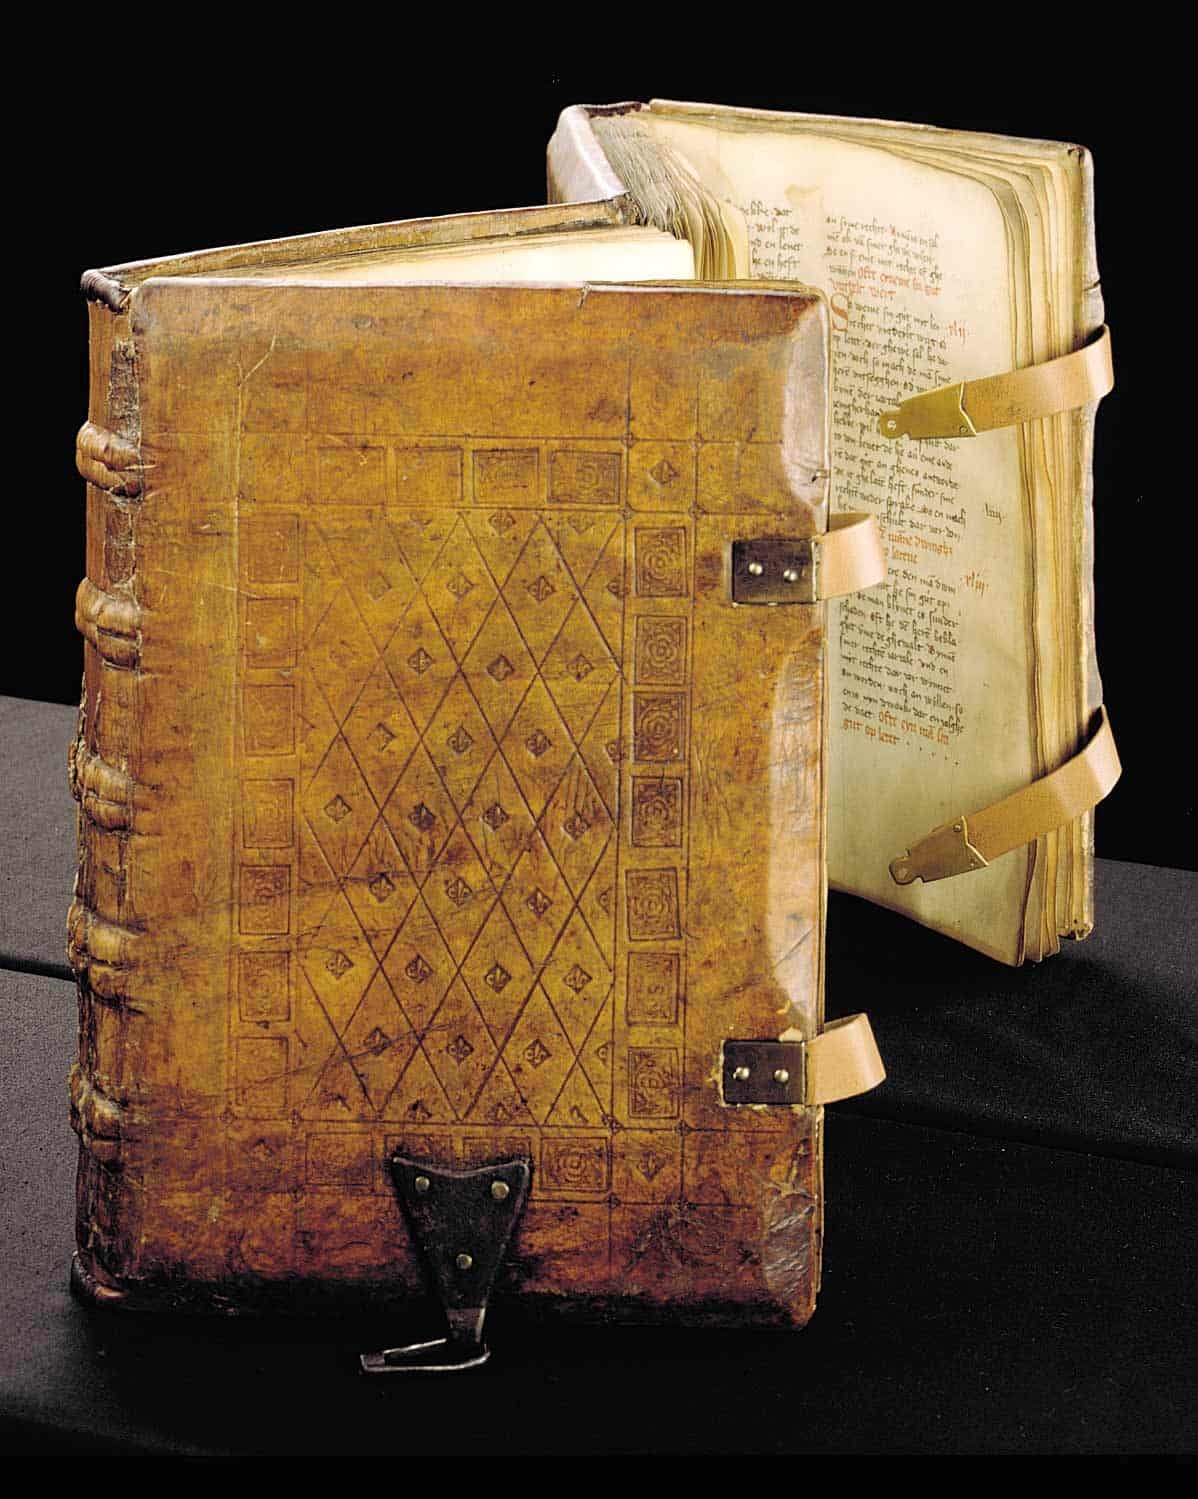 A 1385 copy of the Sachsenspiegel, a German legal code, written on parchment with straps and clasps on the binding